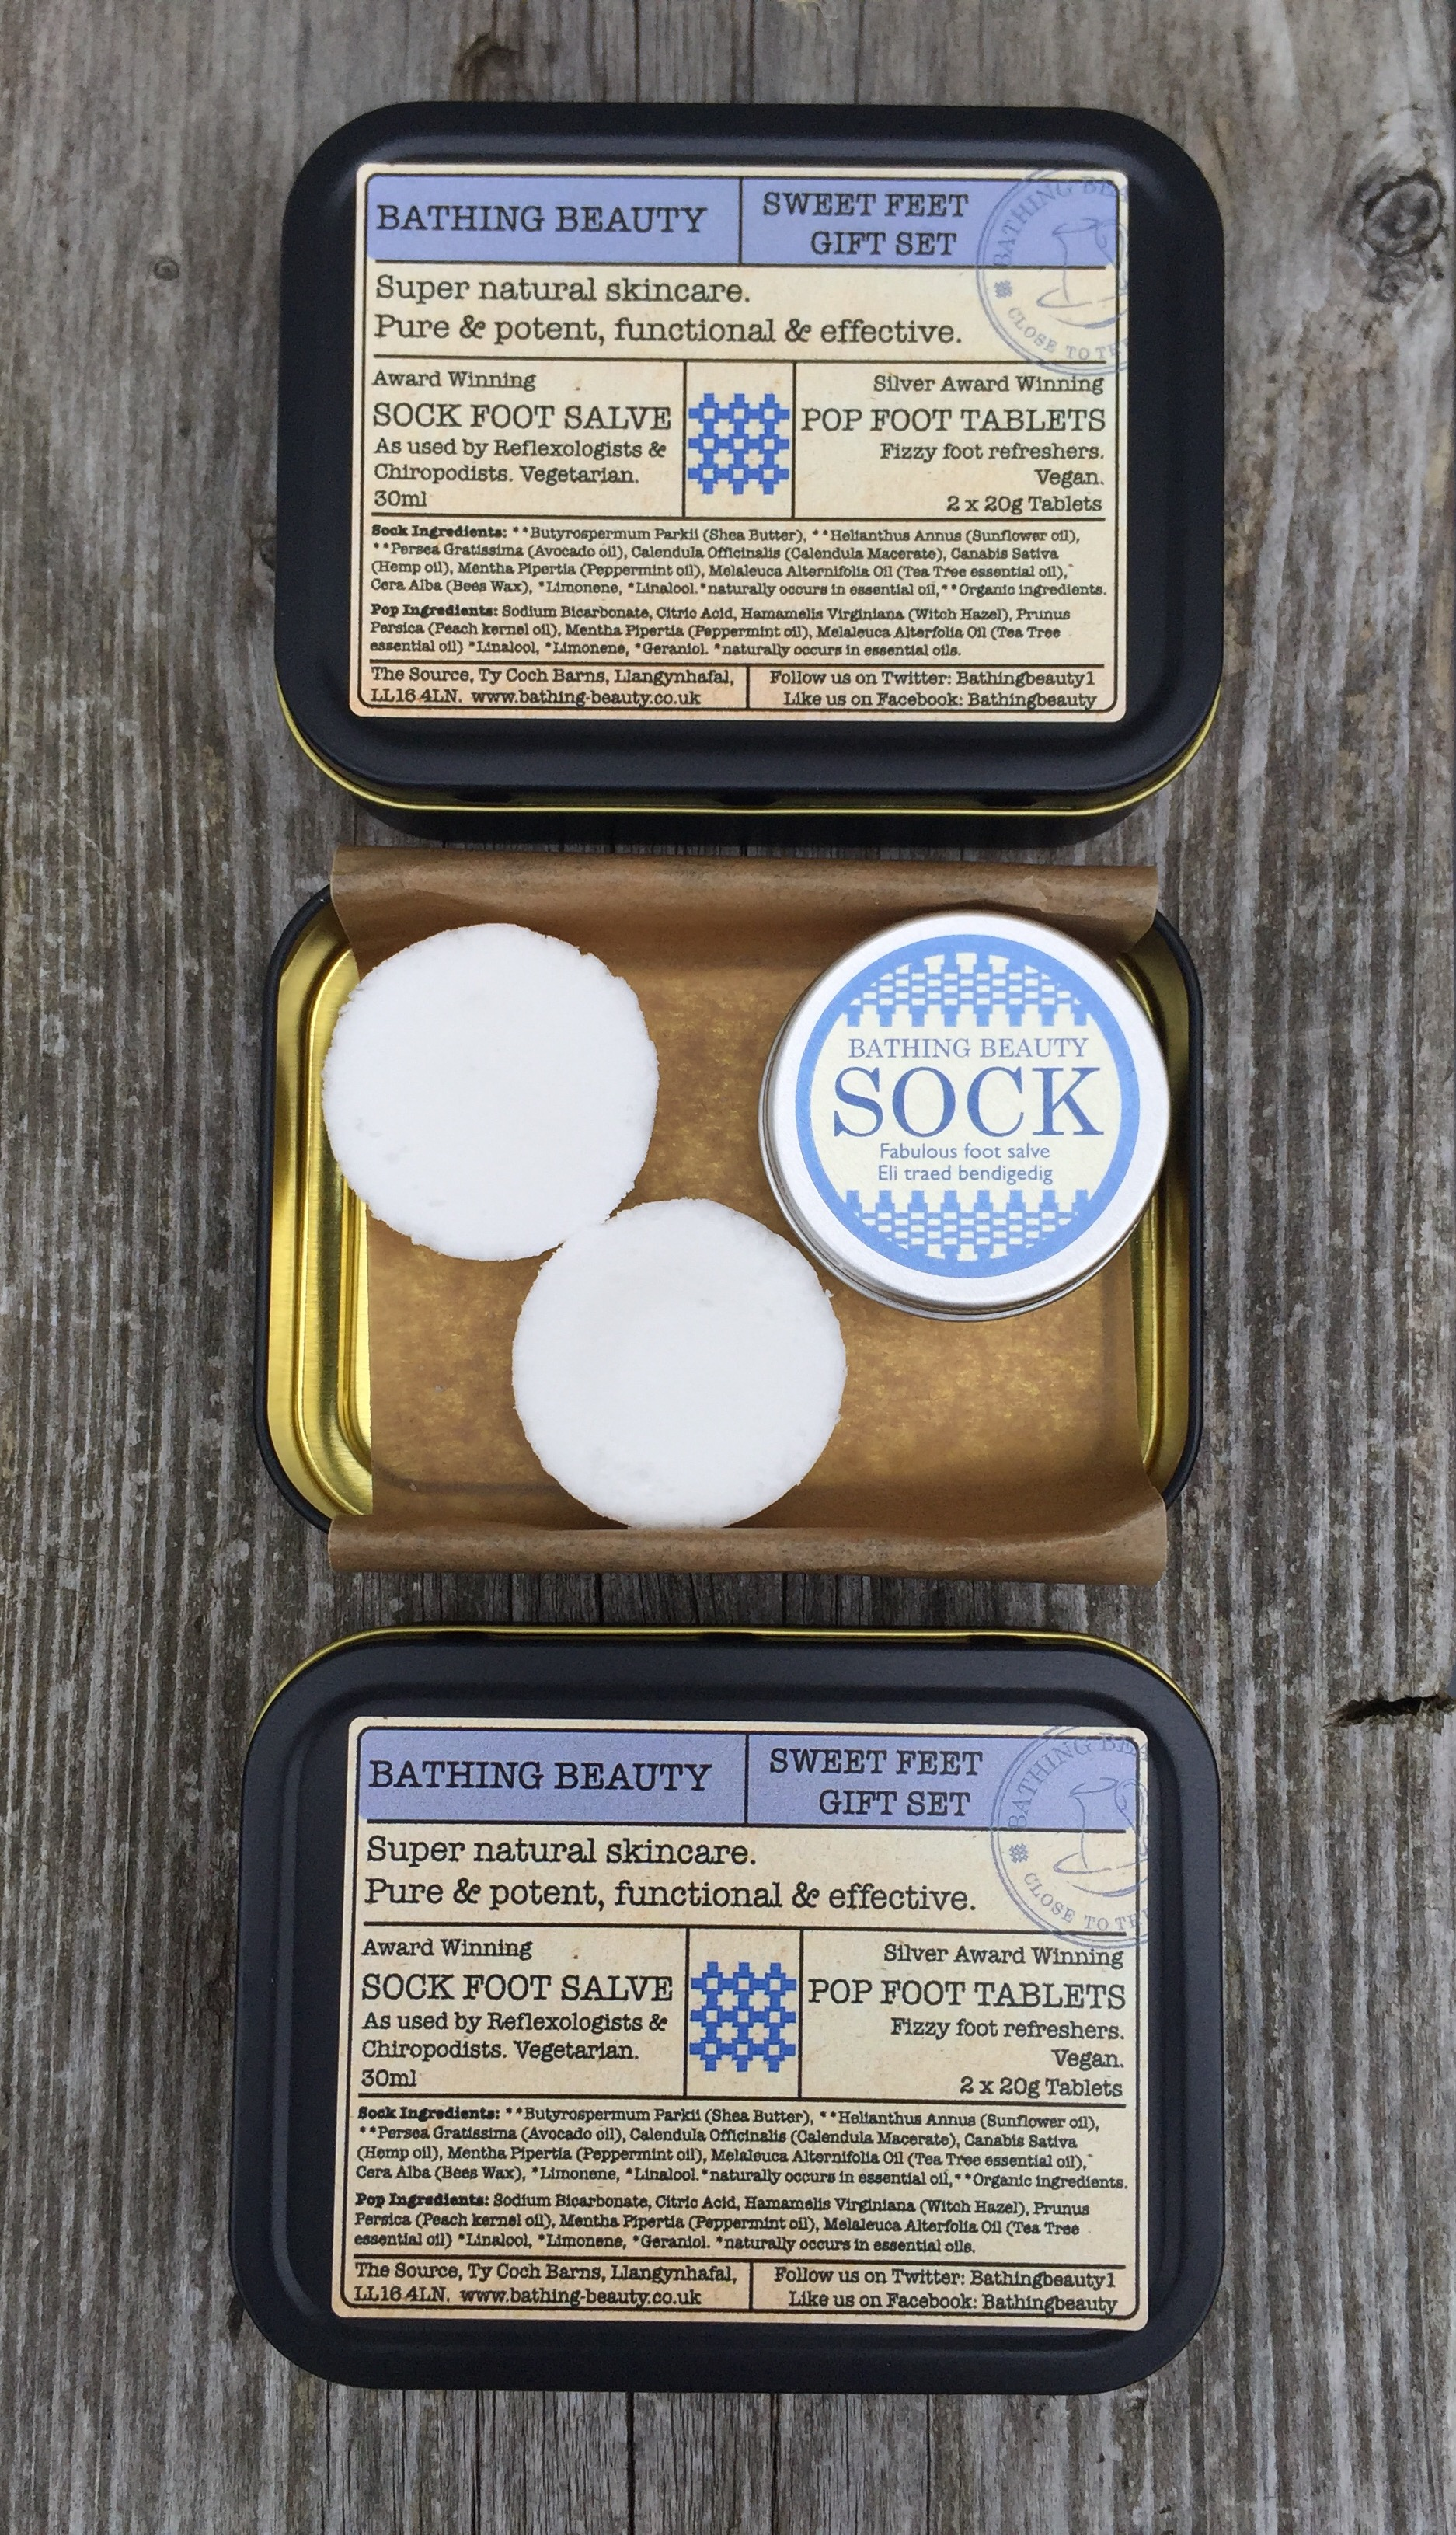 Swtt Feet Gift Tin contains silver award winning Pop Foot Tablet and award winning Sock foot salve